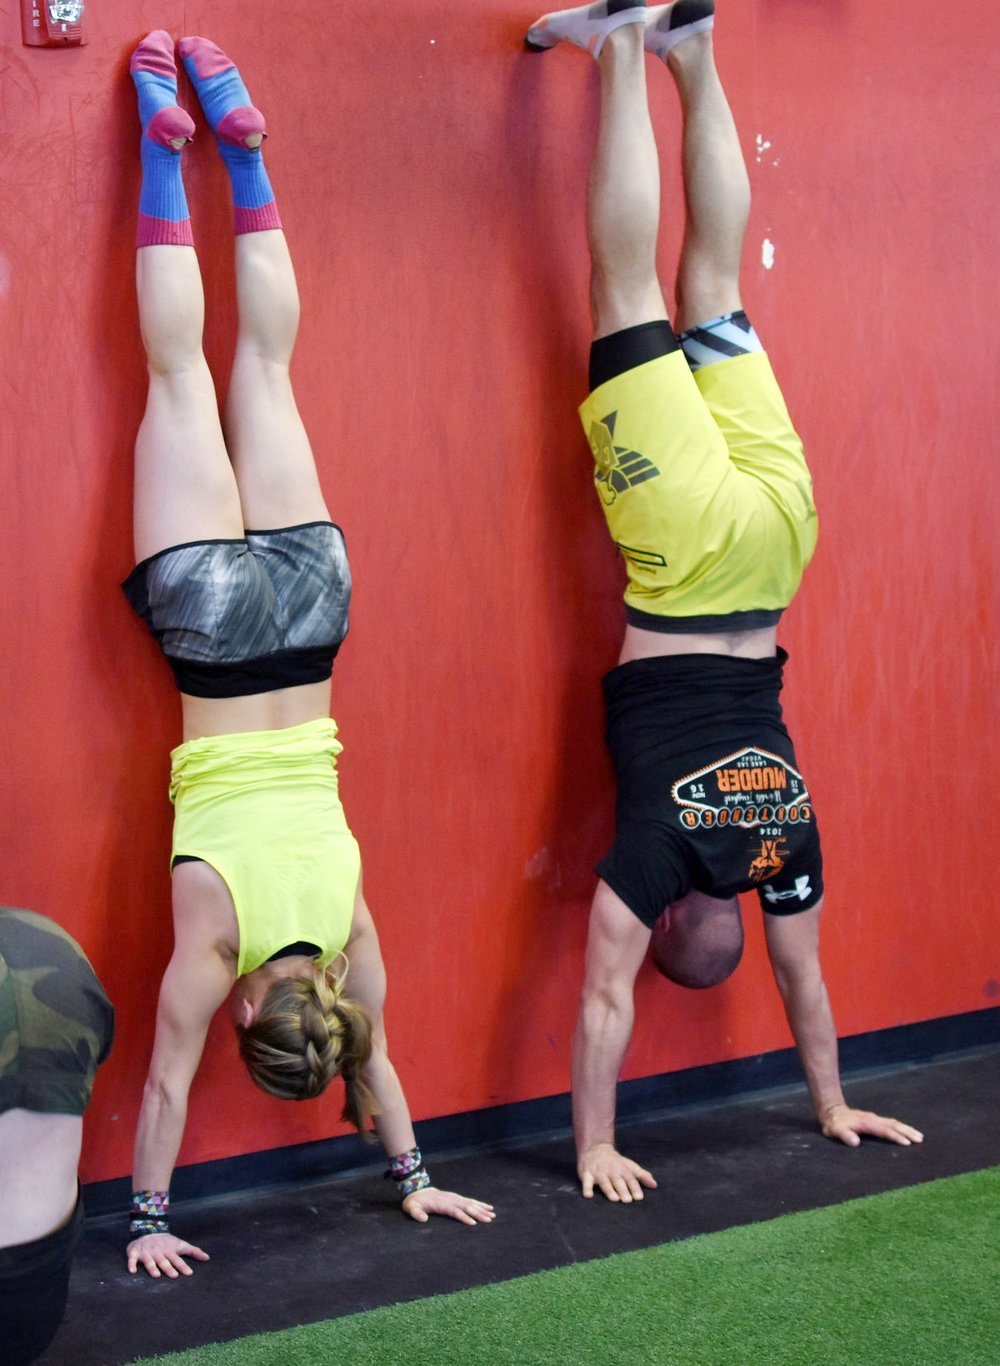 The Wall Climb is a shoulder and midline stability builder. Maintaining control from the bottom to the top and back again to the bottom is key. To do this, keep the glutes squeezed and hold a hollow position, keeping the belly away from the wall.